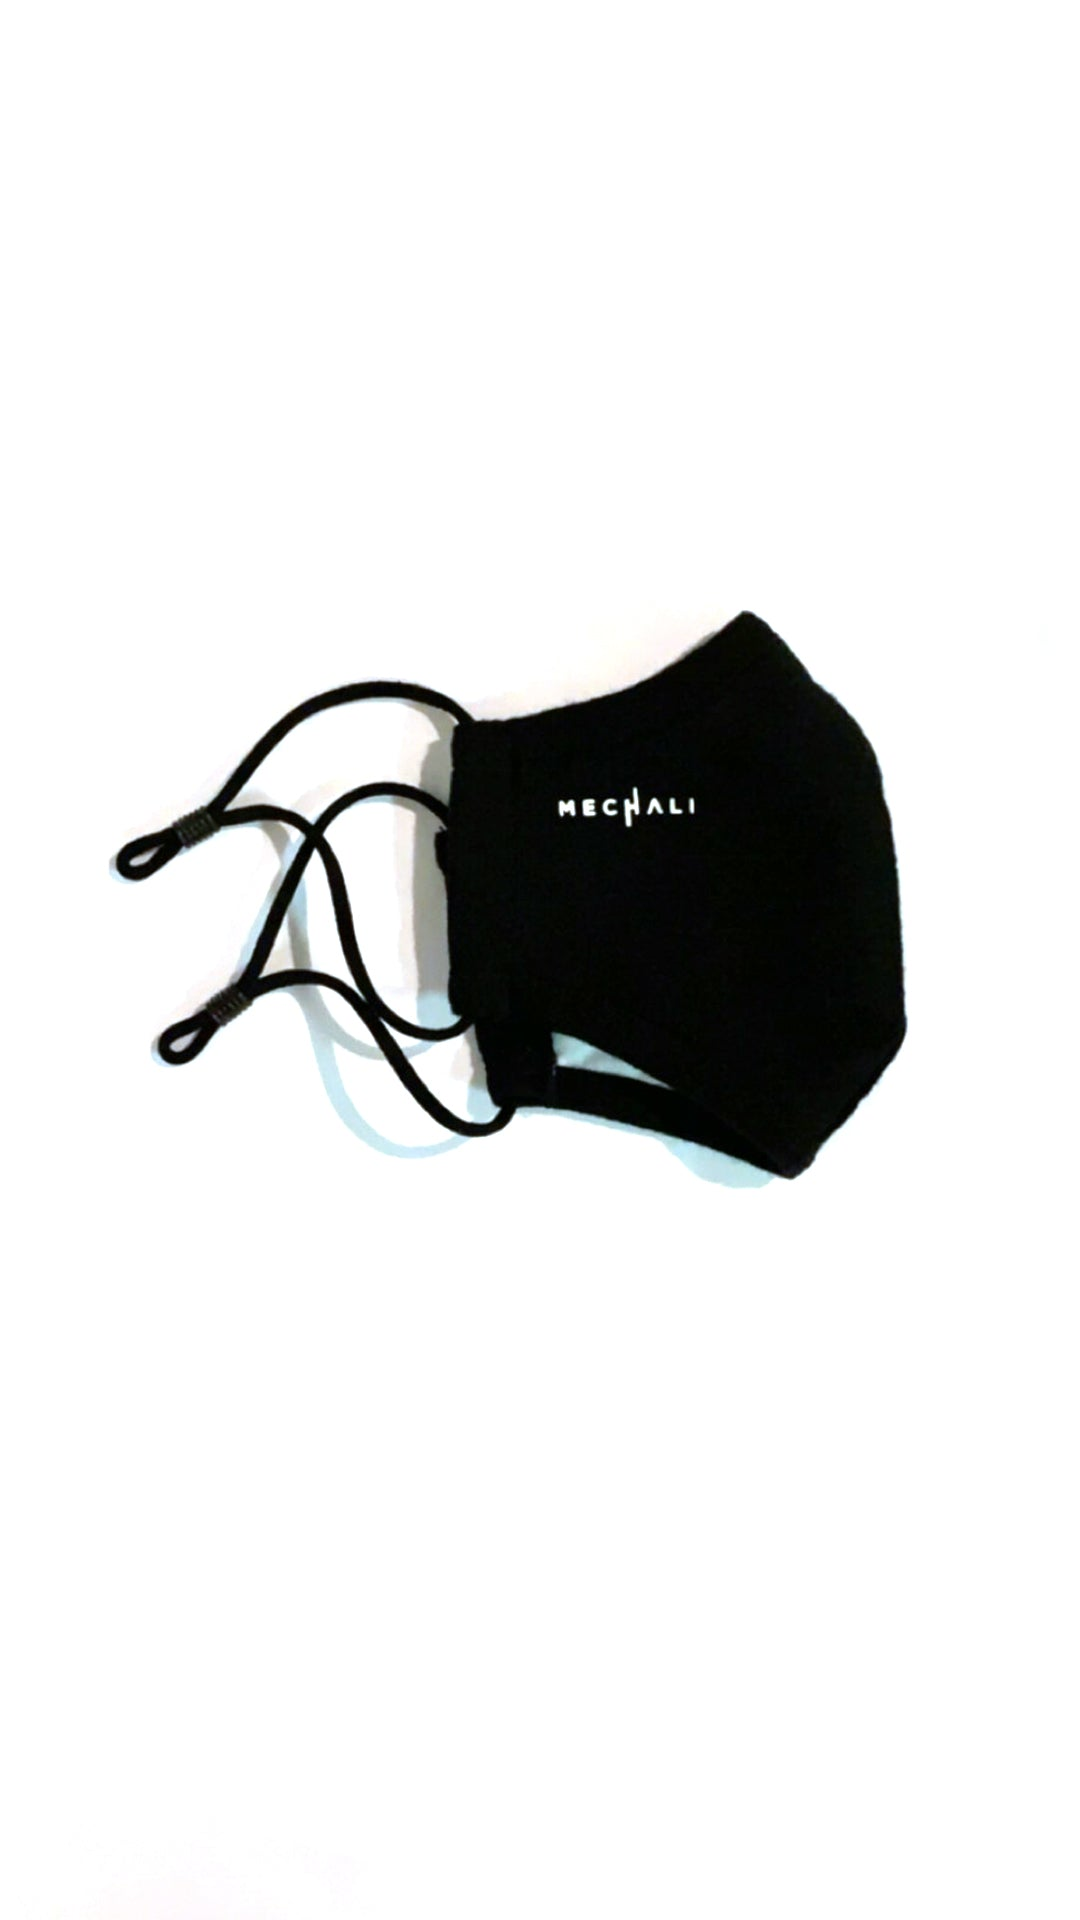 MECHALI PROTECTIVE FACE MASK